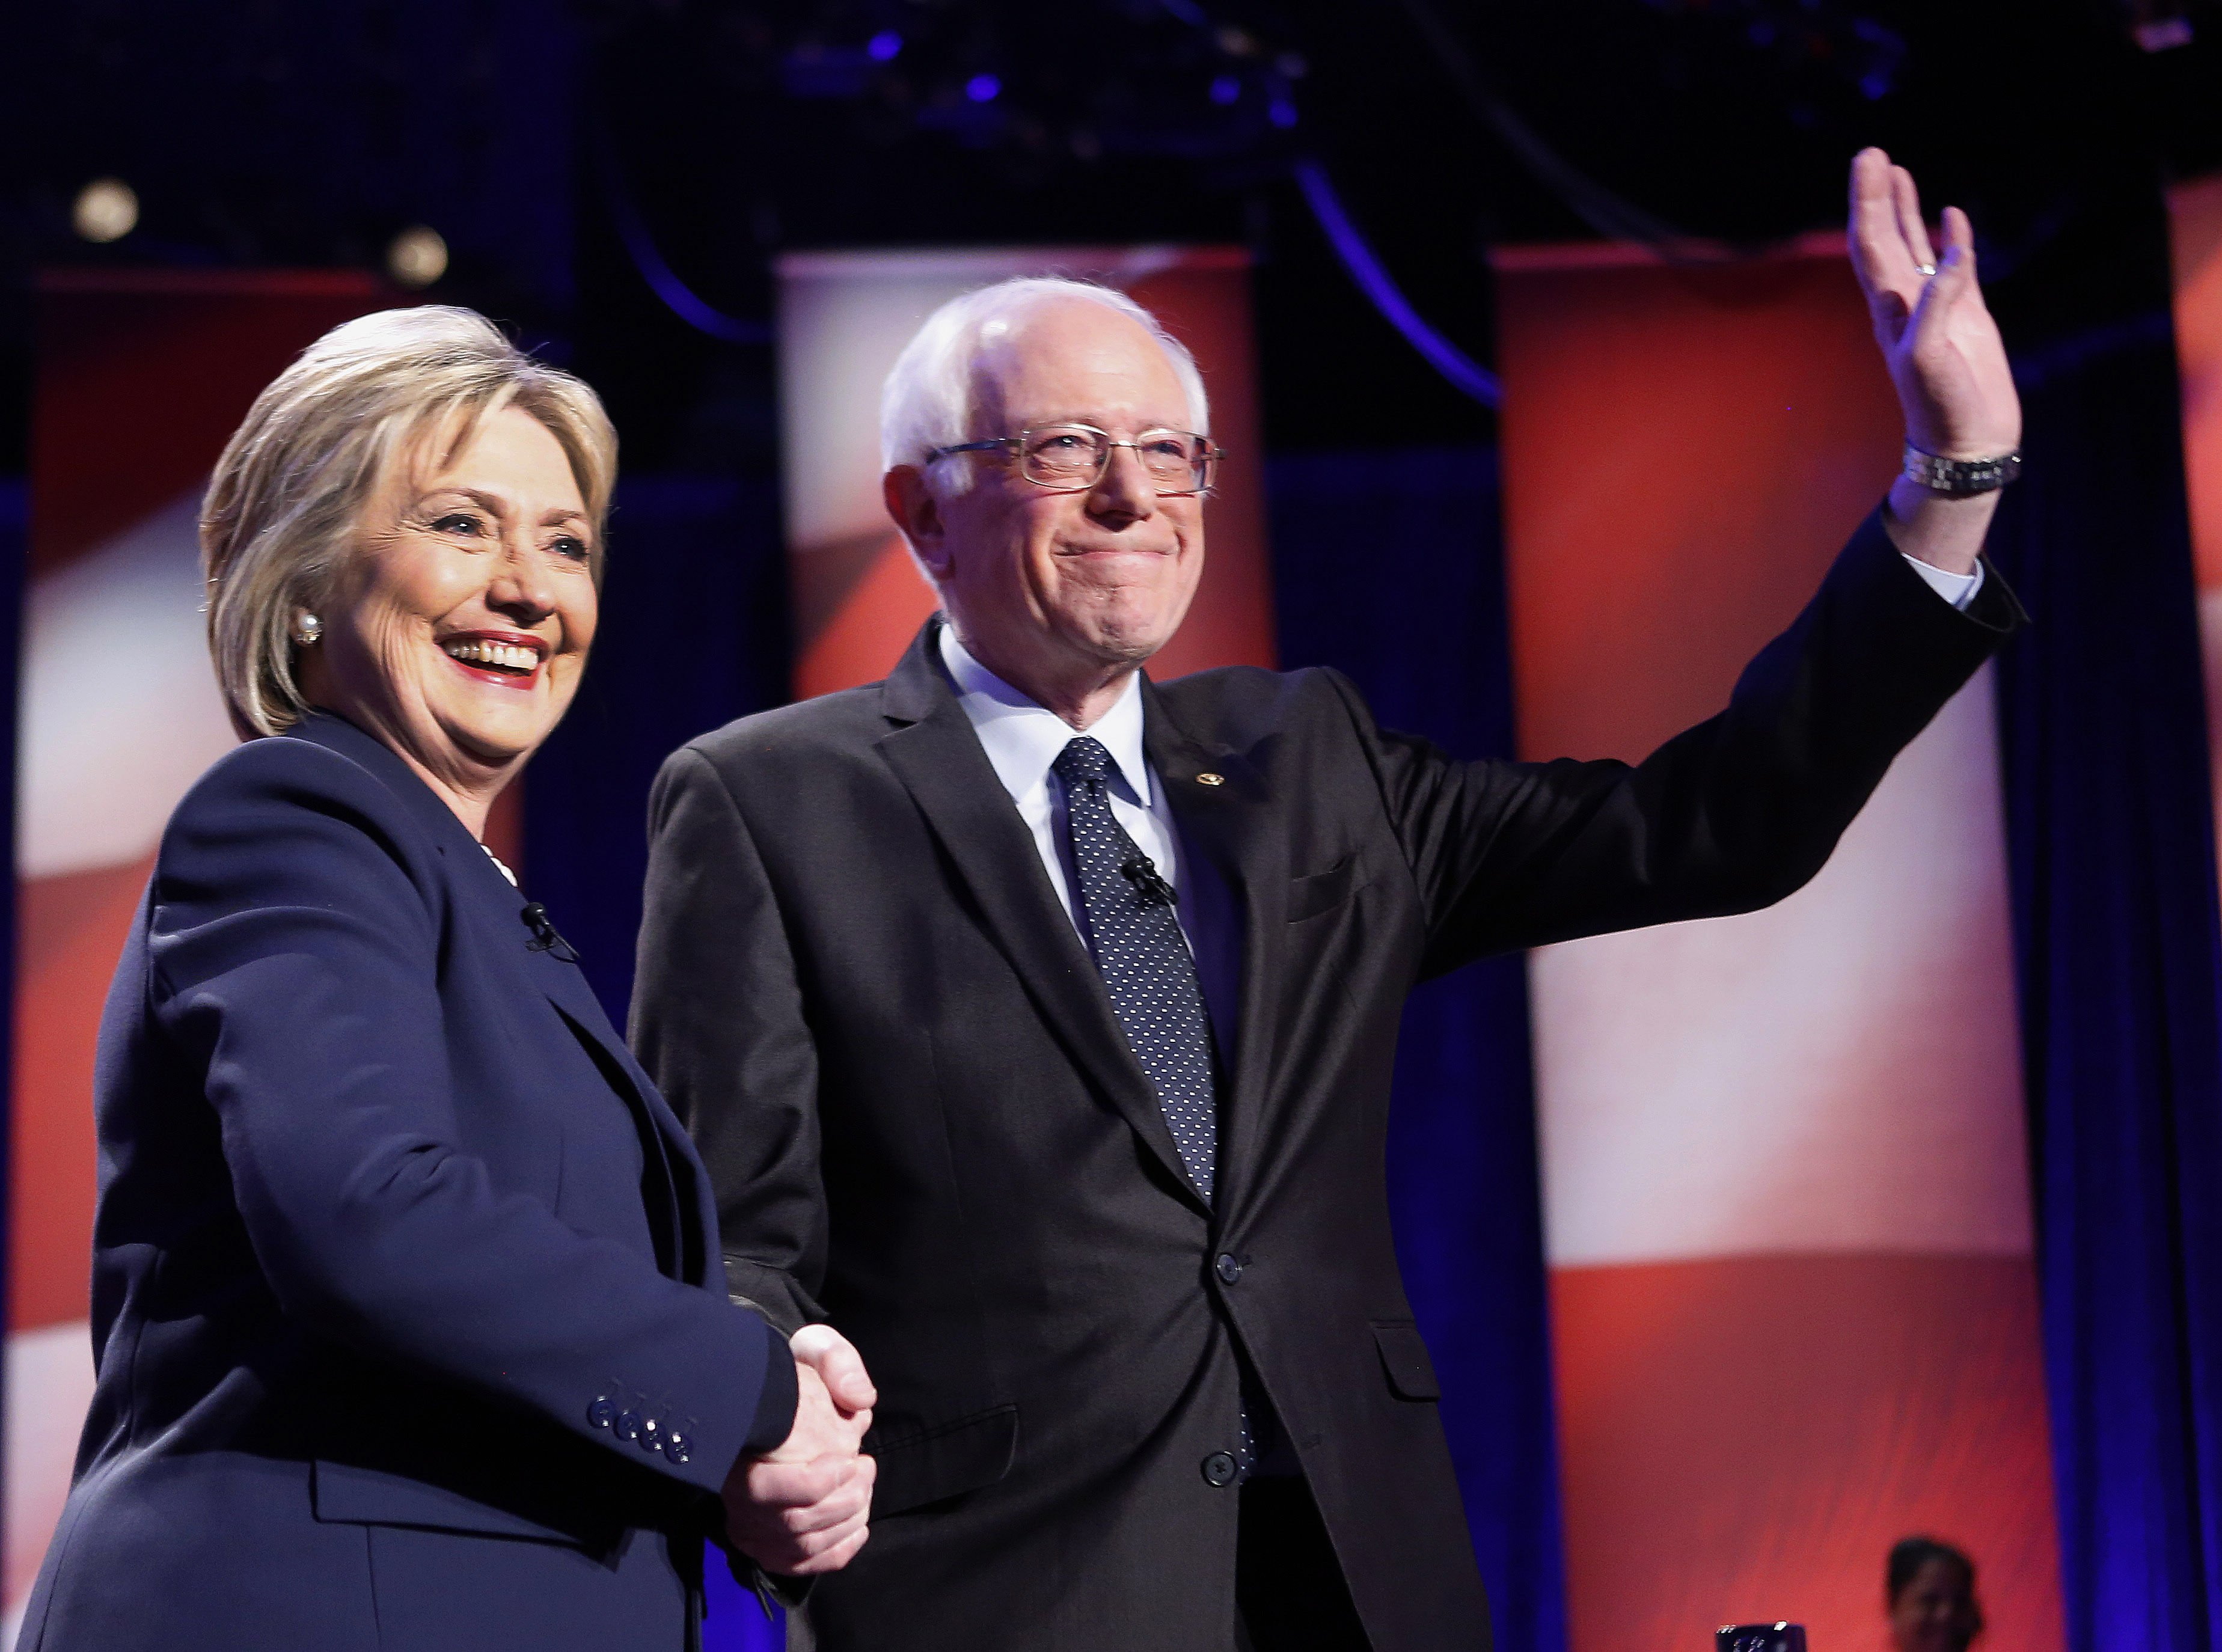 Democratic presidential candidates Hillary Clinton, left, and Sen. Bernie Sanders, I-Vt, pose for a photo before debating at the University of New Hampshire Thursday, Feb. 4, 2016, in Durham, N.H. (AP Photo/Jim Cole)